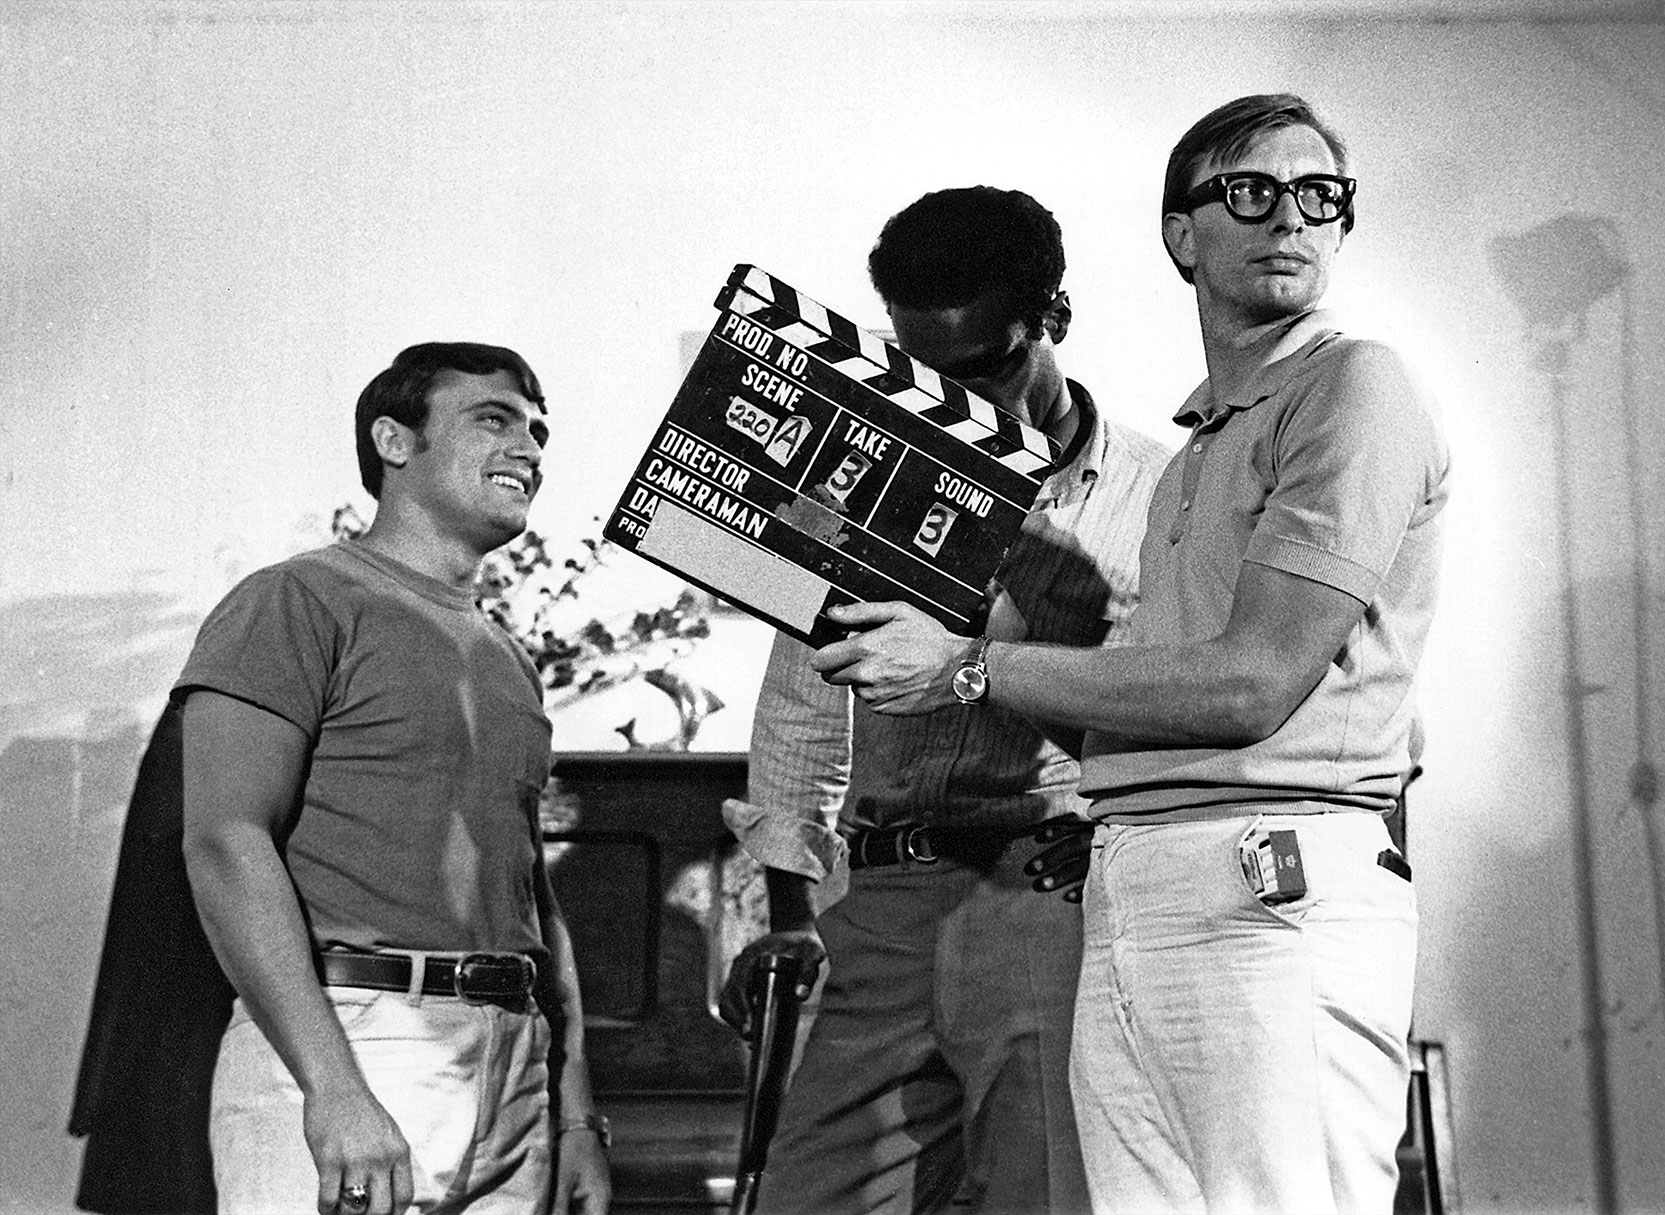 Russ Streiner, Duane Jones and Keith Wayne . Ready to film a scene in Night of the Living Dead. Photo © Image Ten, Inc. All Rights Reserved